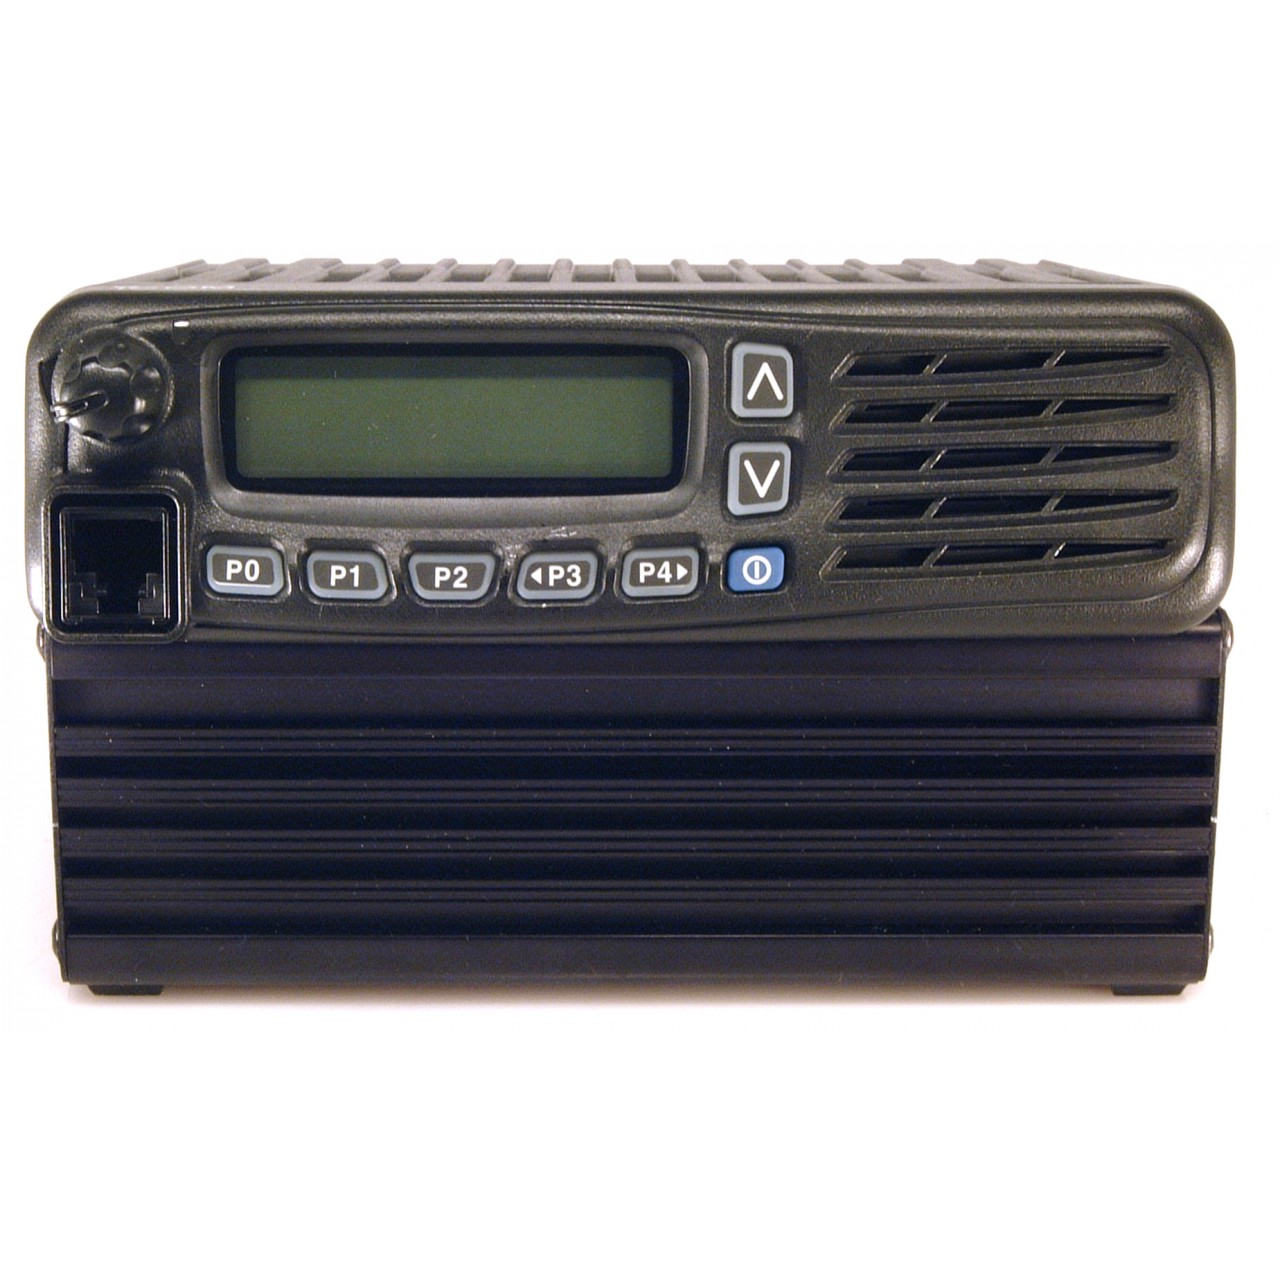 PS-ADF5062 Chargeurs et alimentations - ICOM